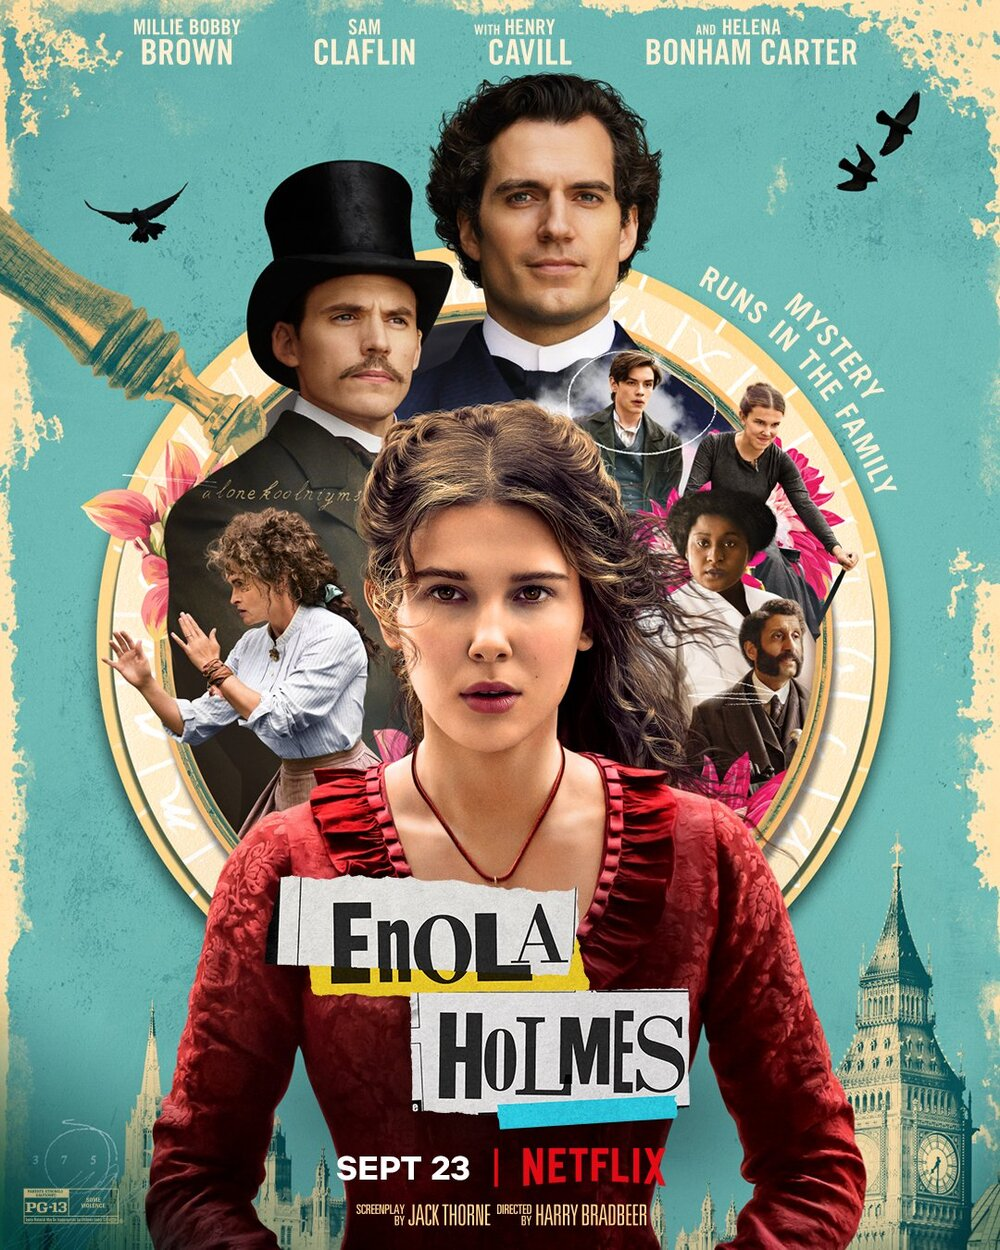 new-poster-for-millie-bobby-browns-sherlock-holmes-inspired-film-enola-holmes3